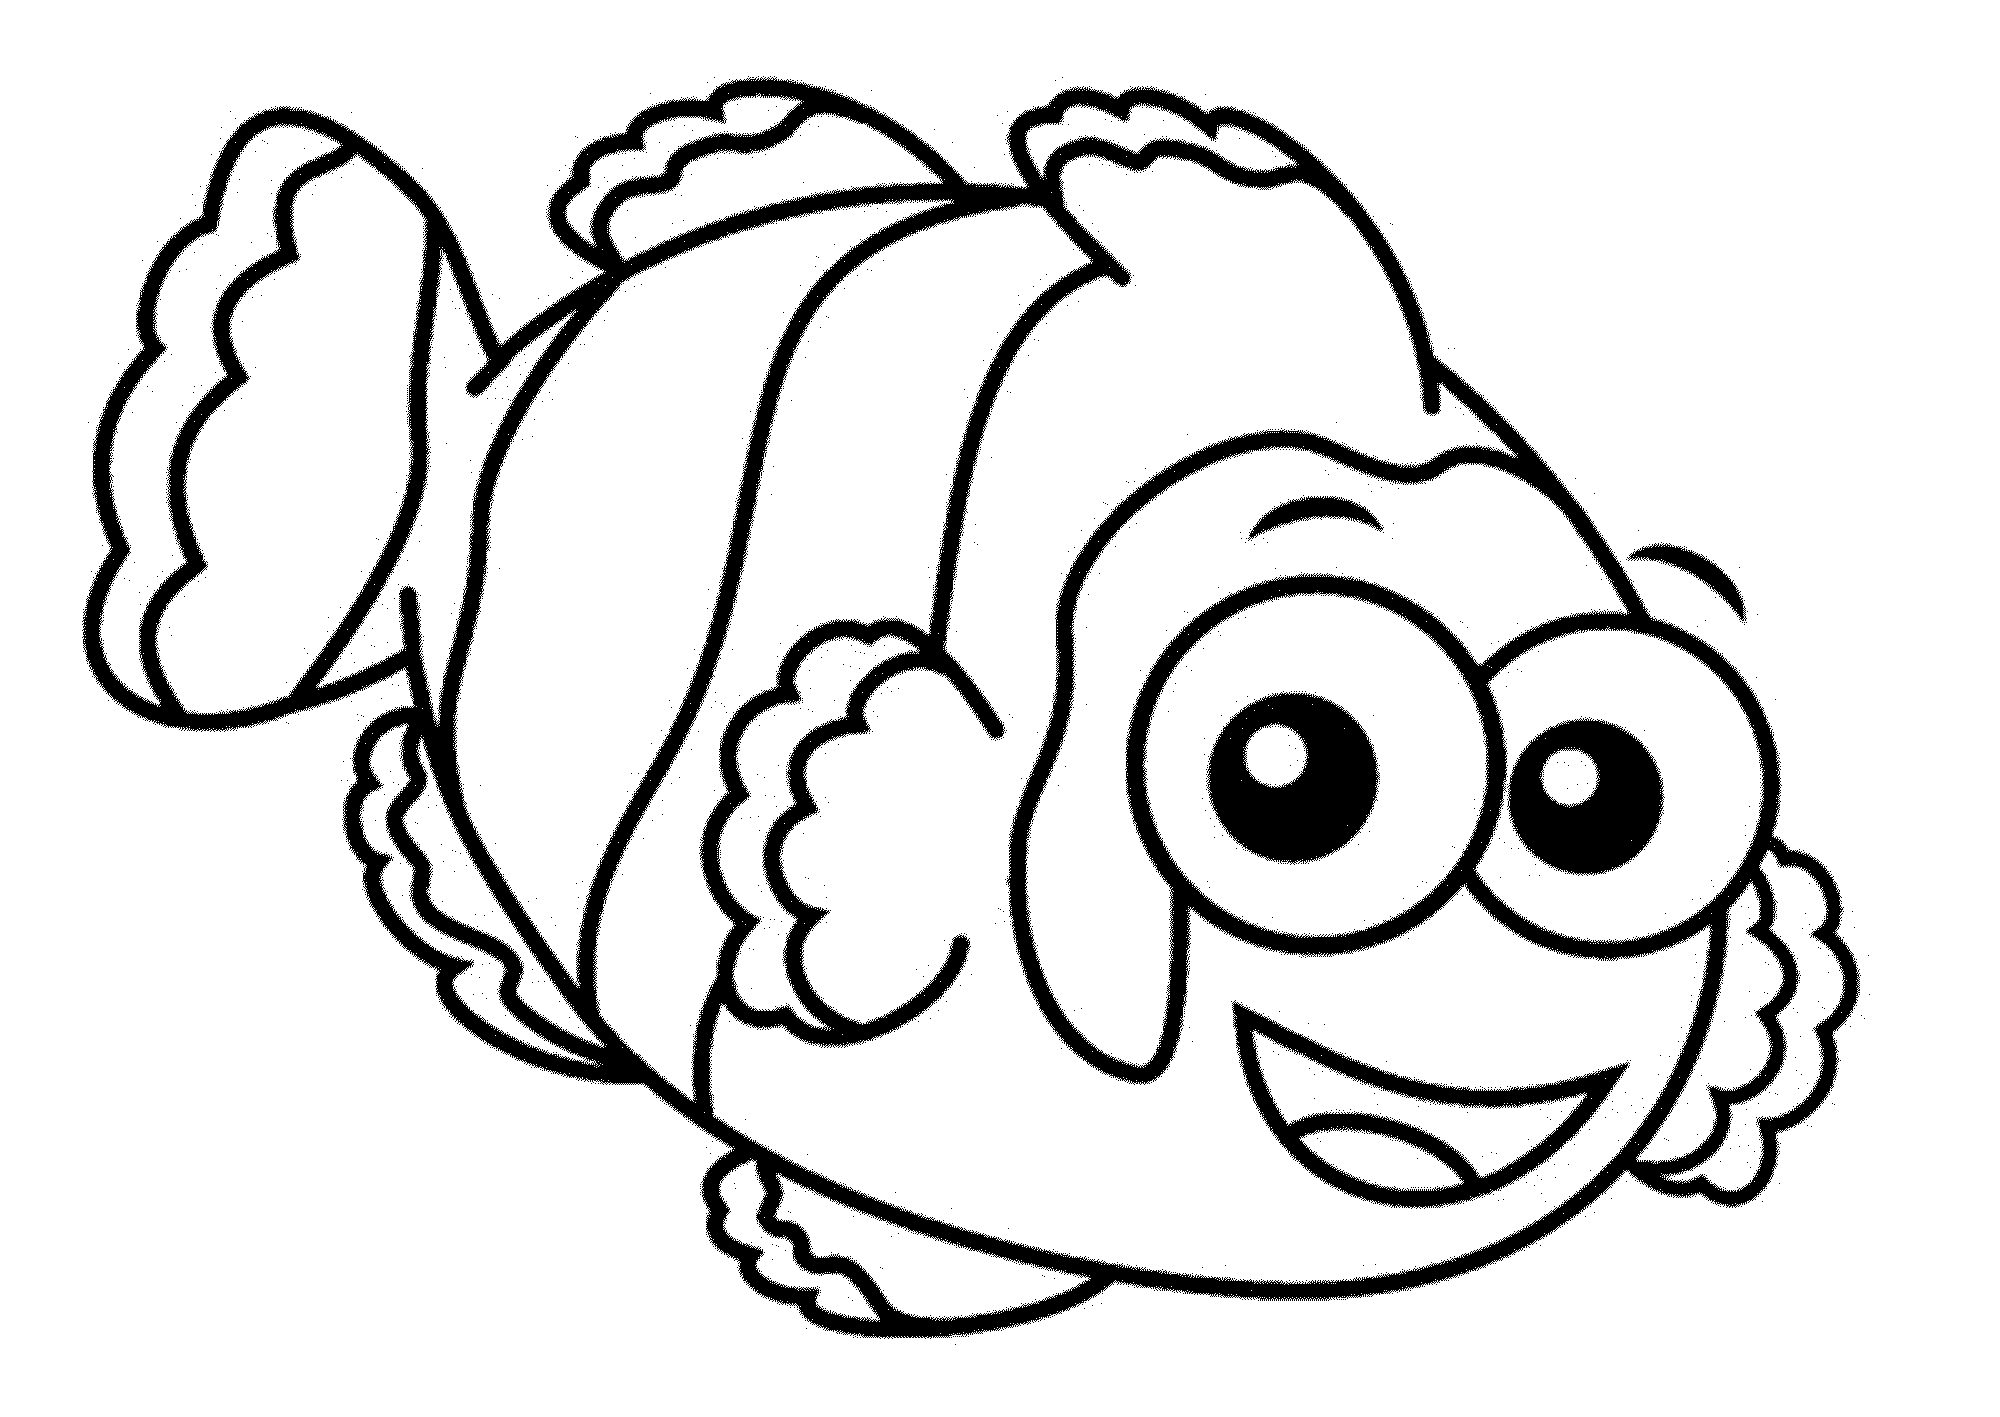 fish cartoon coloring pages easy coloring pages easy coloring pages fish coloring cartoon pages fish coloring